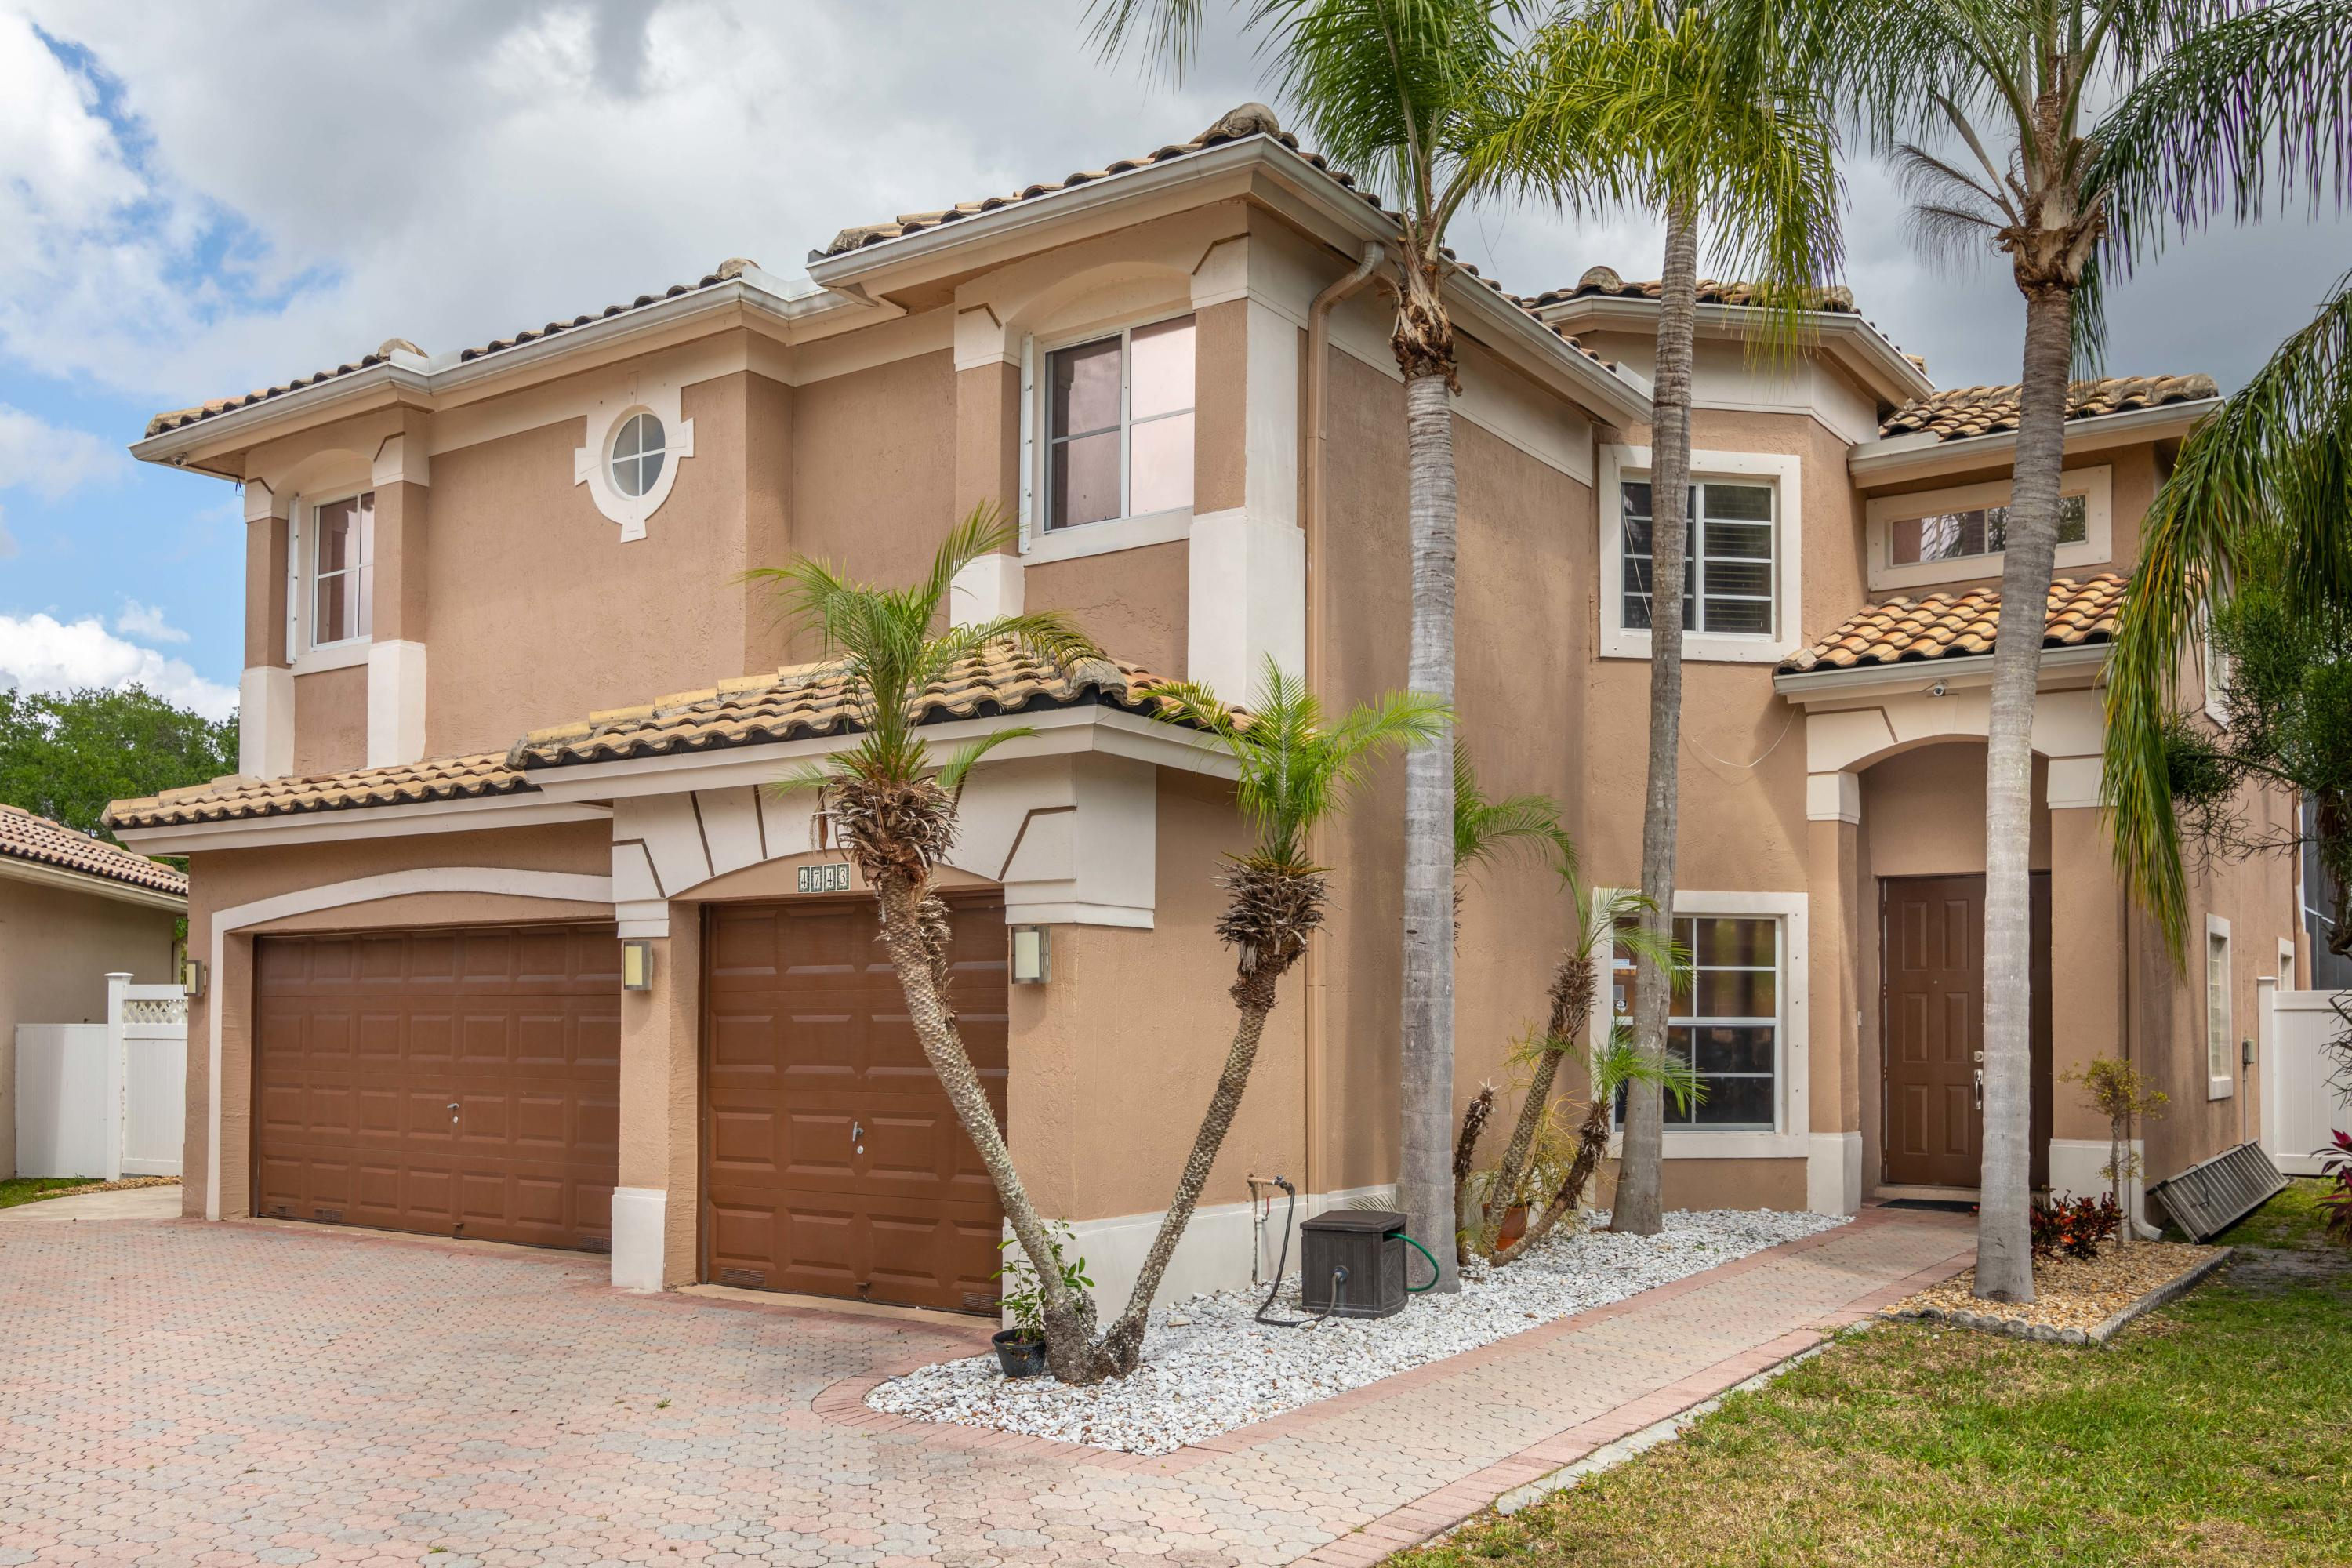 Home for sale in Golden Bay Coral Springs Florida